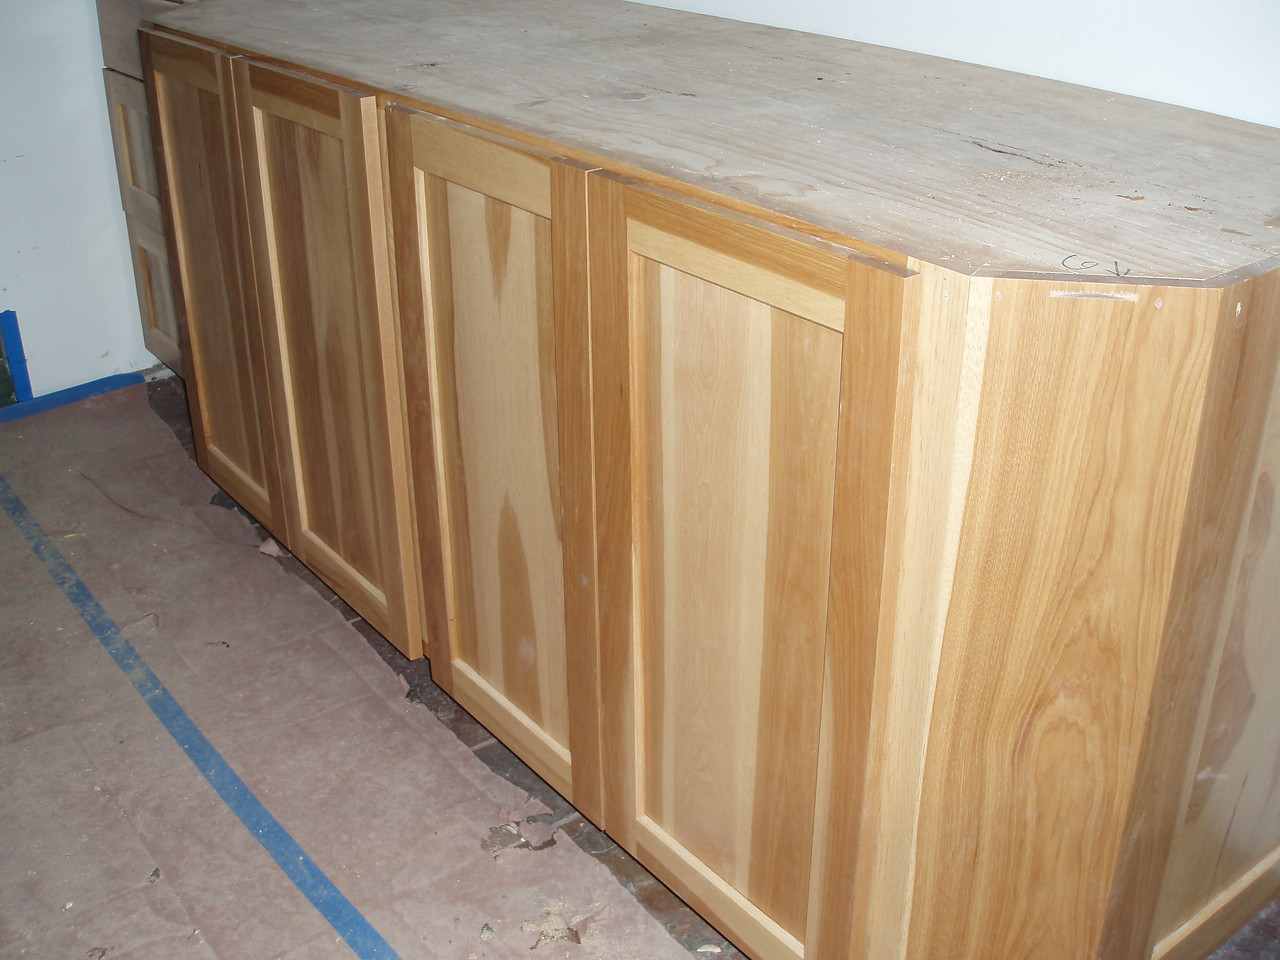 These wonderful happy wood cabinets are for the spa bathroom sink area.